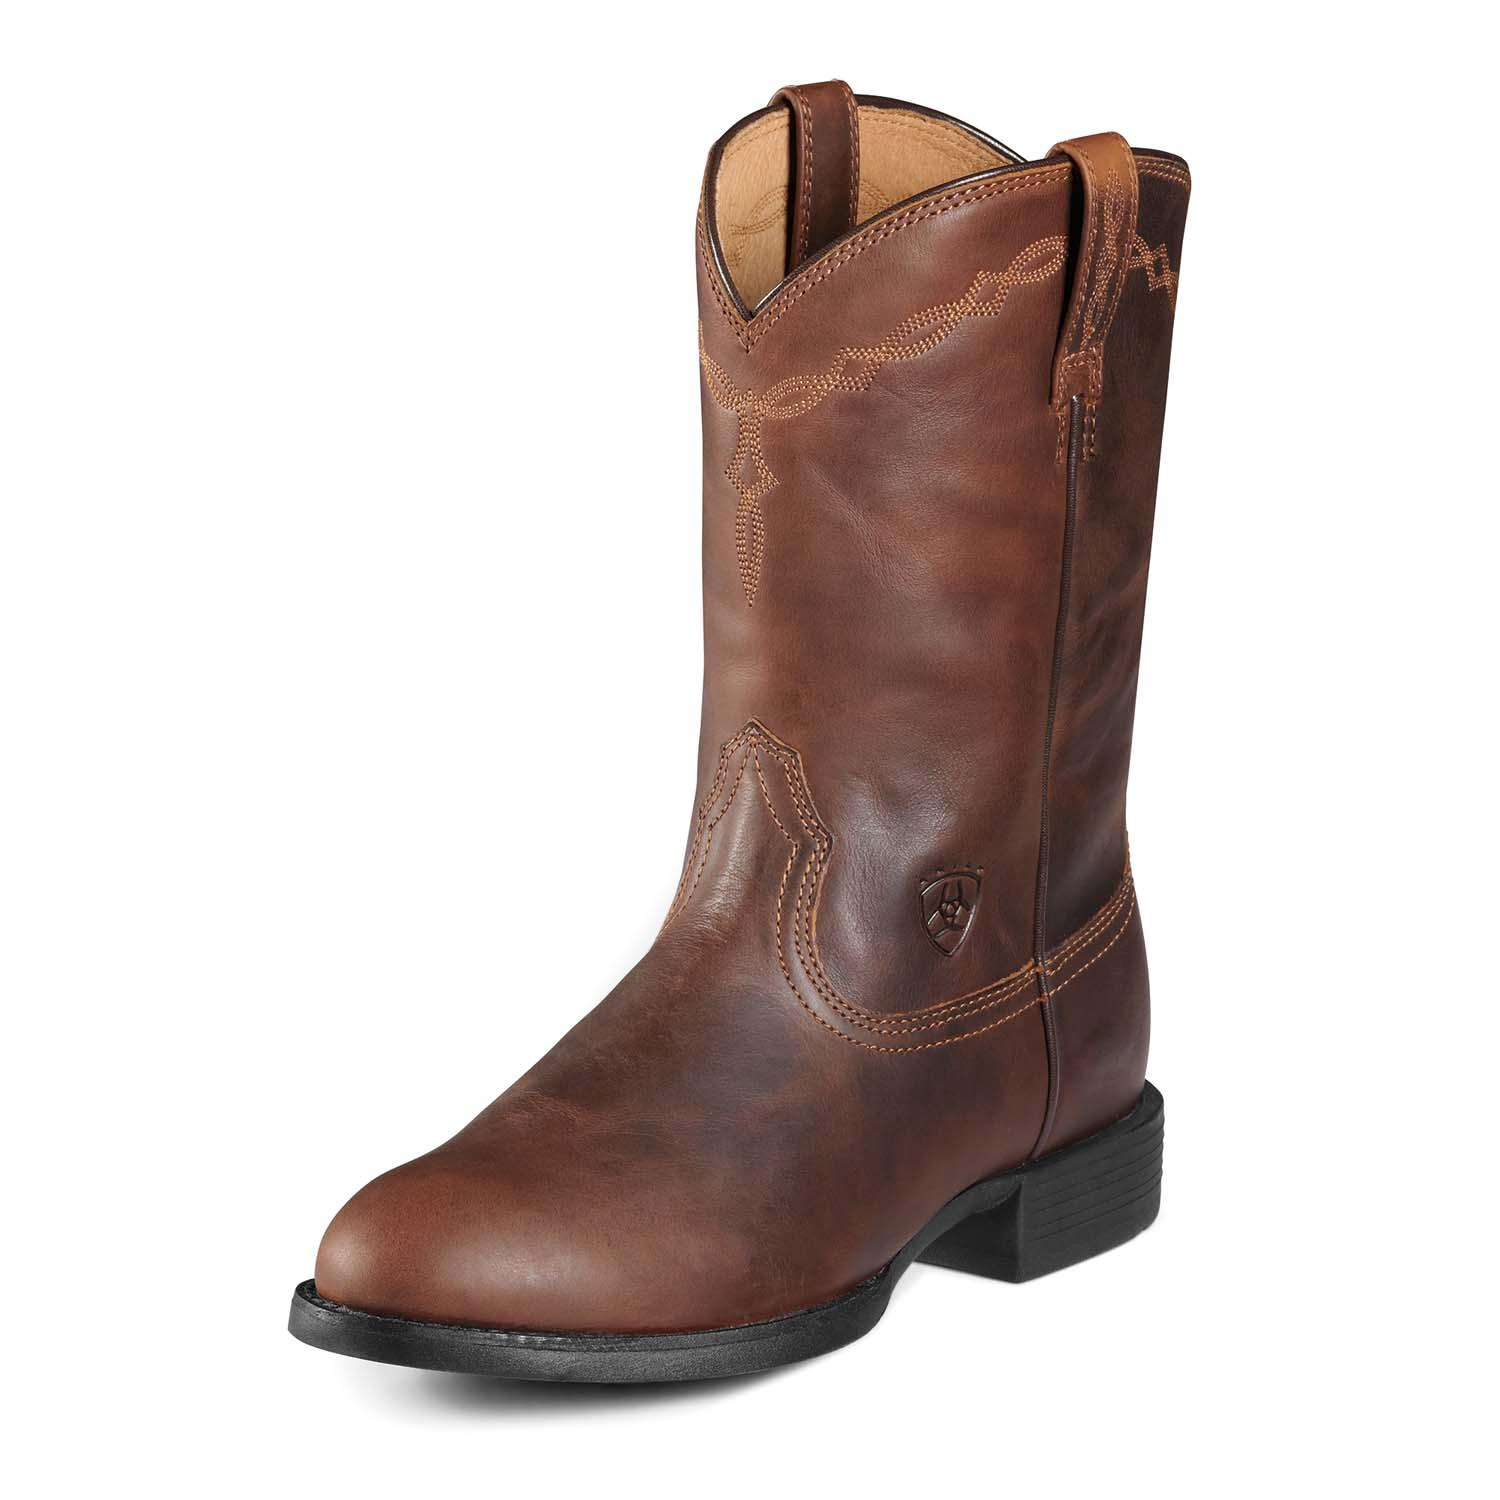 Ariat & Muck Boots Wallace Farm and Pet Supply, Inc. 4343 Hwy 27 ...